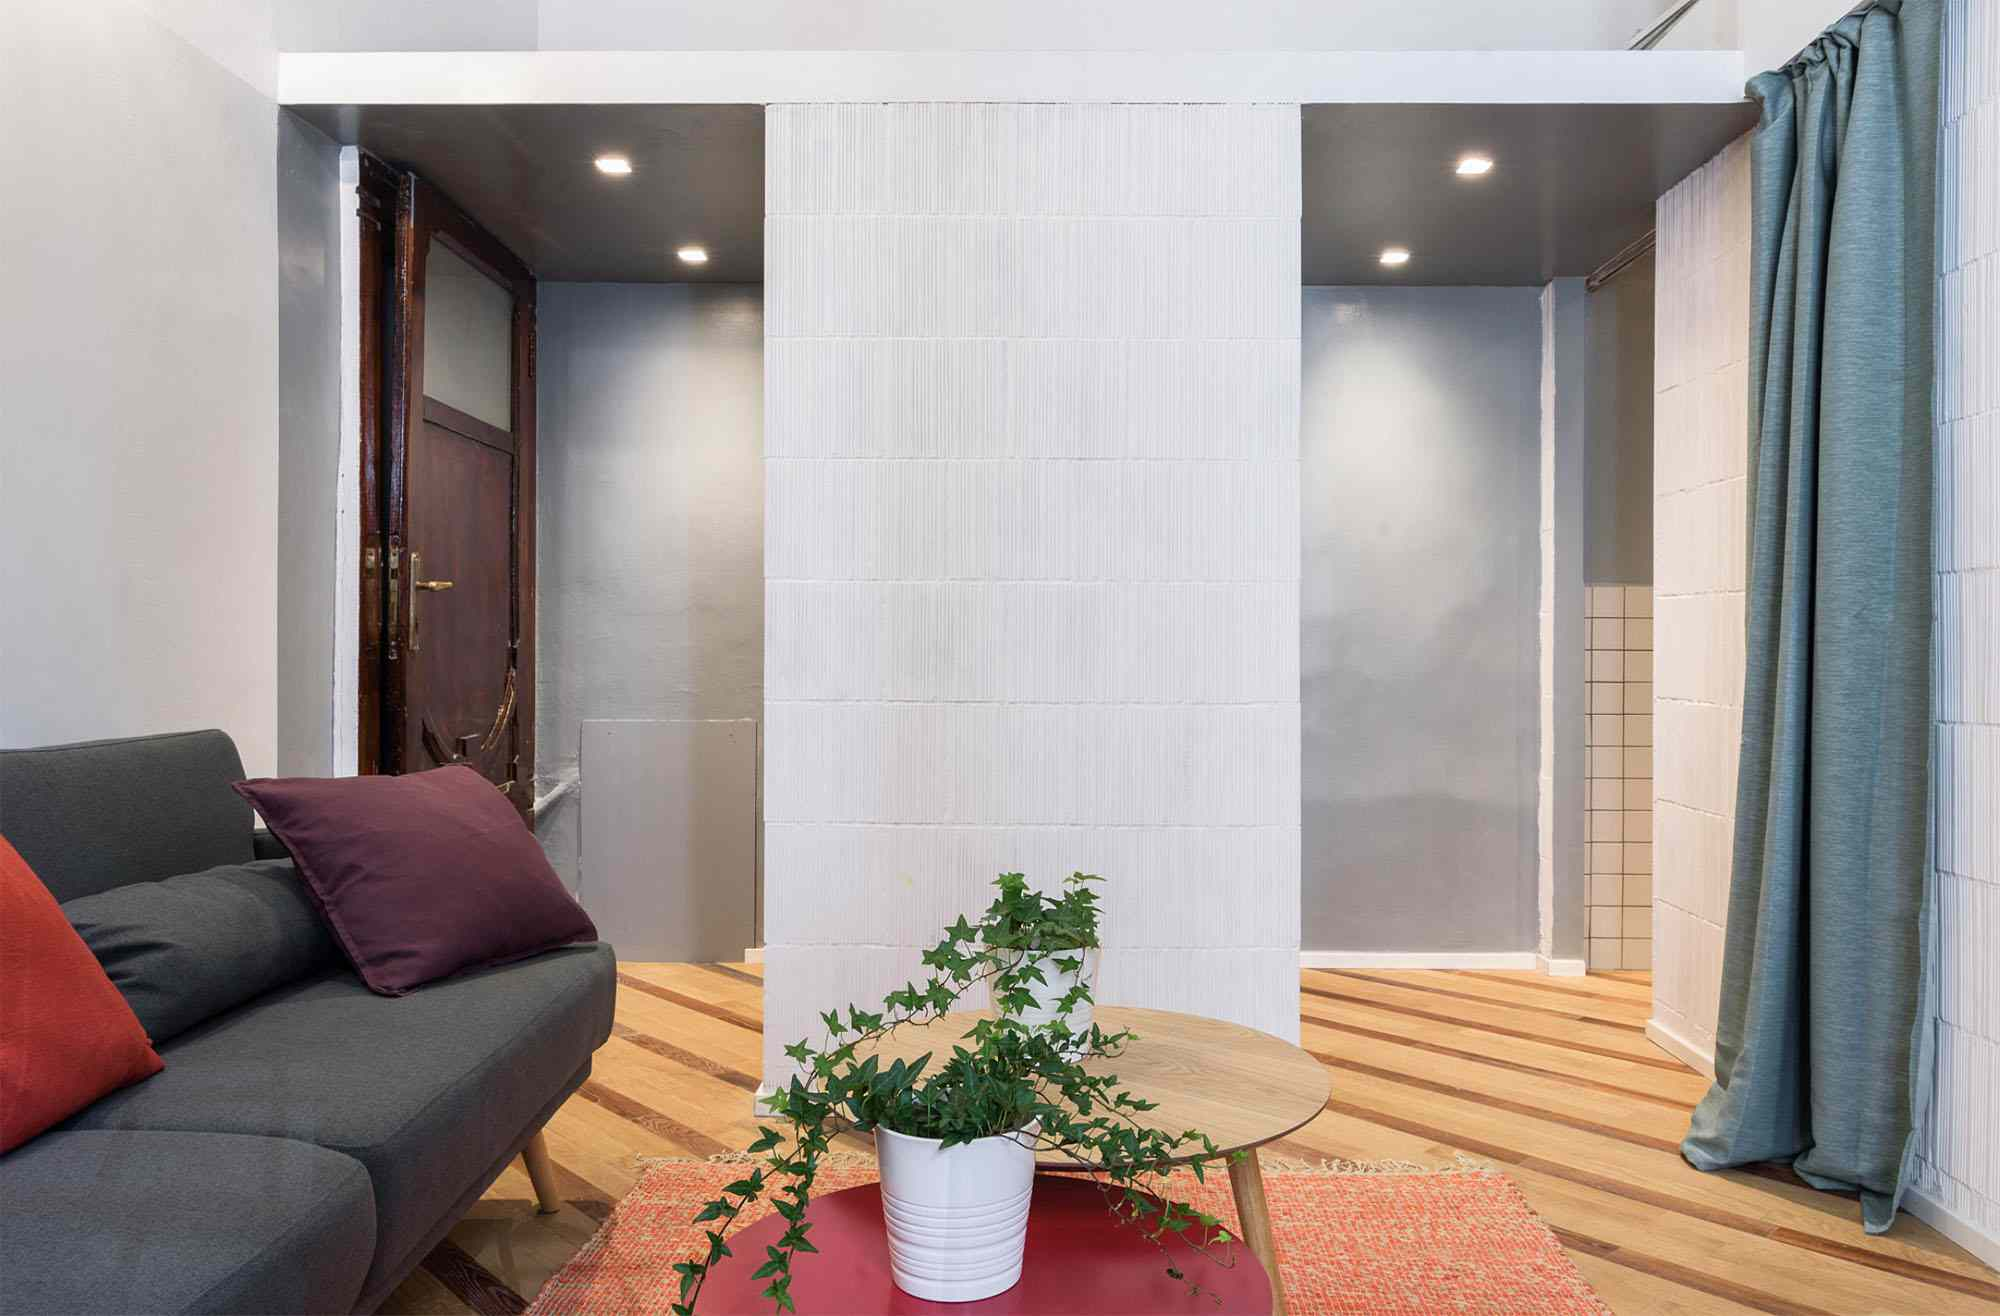 House In Constant Transition small apartment renovation ATOMAA living room